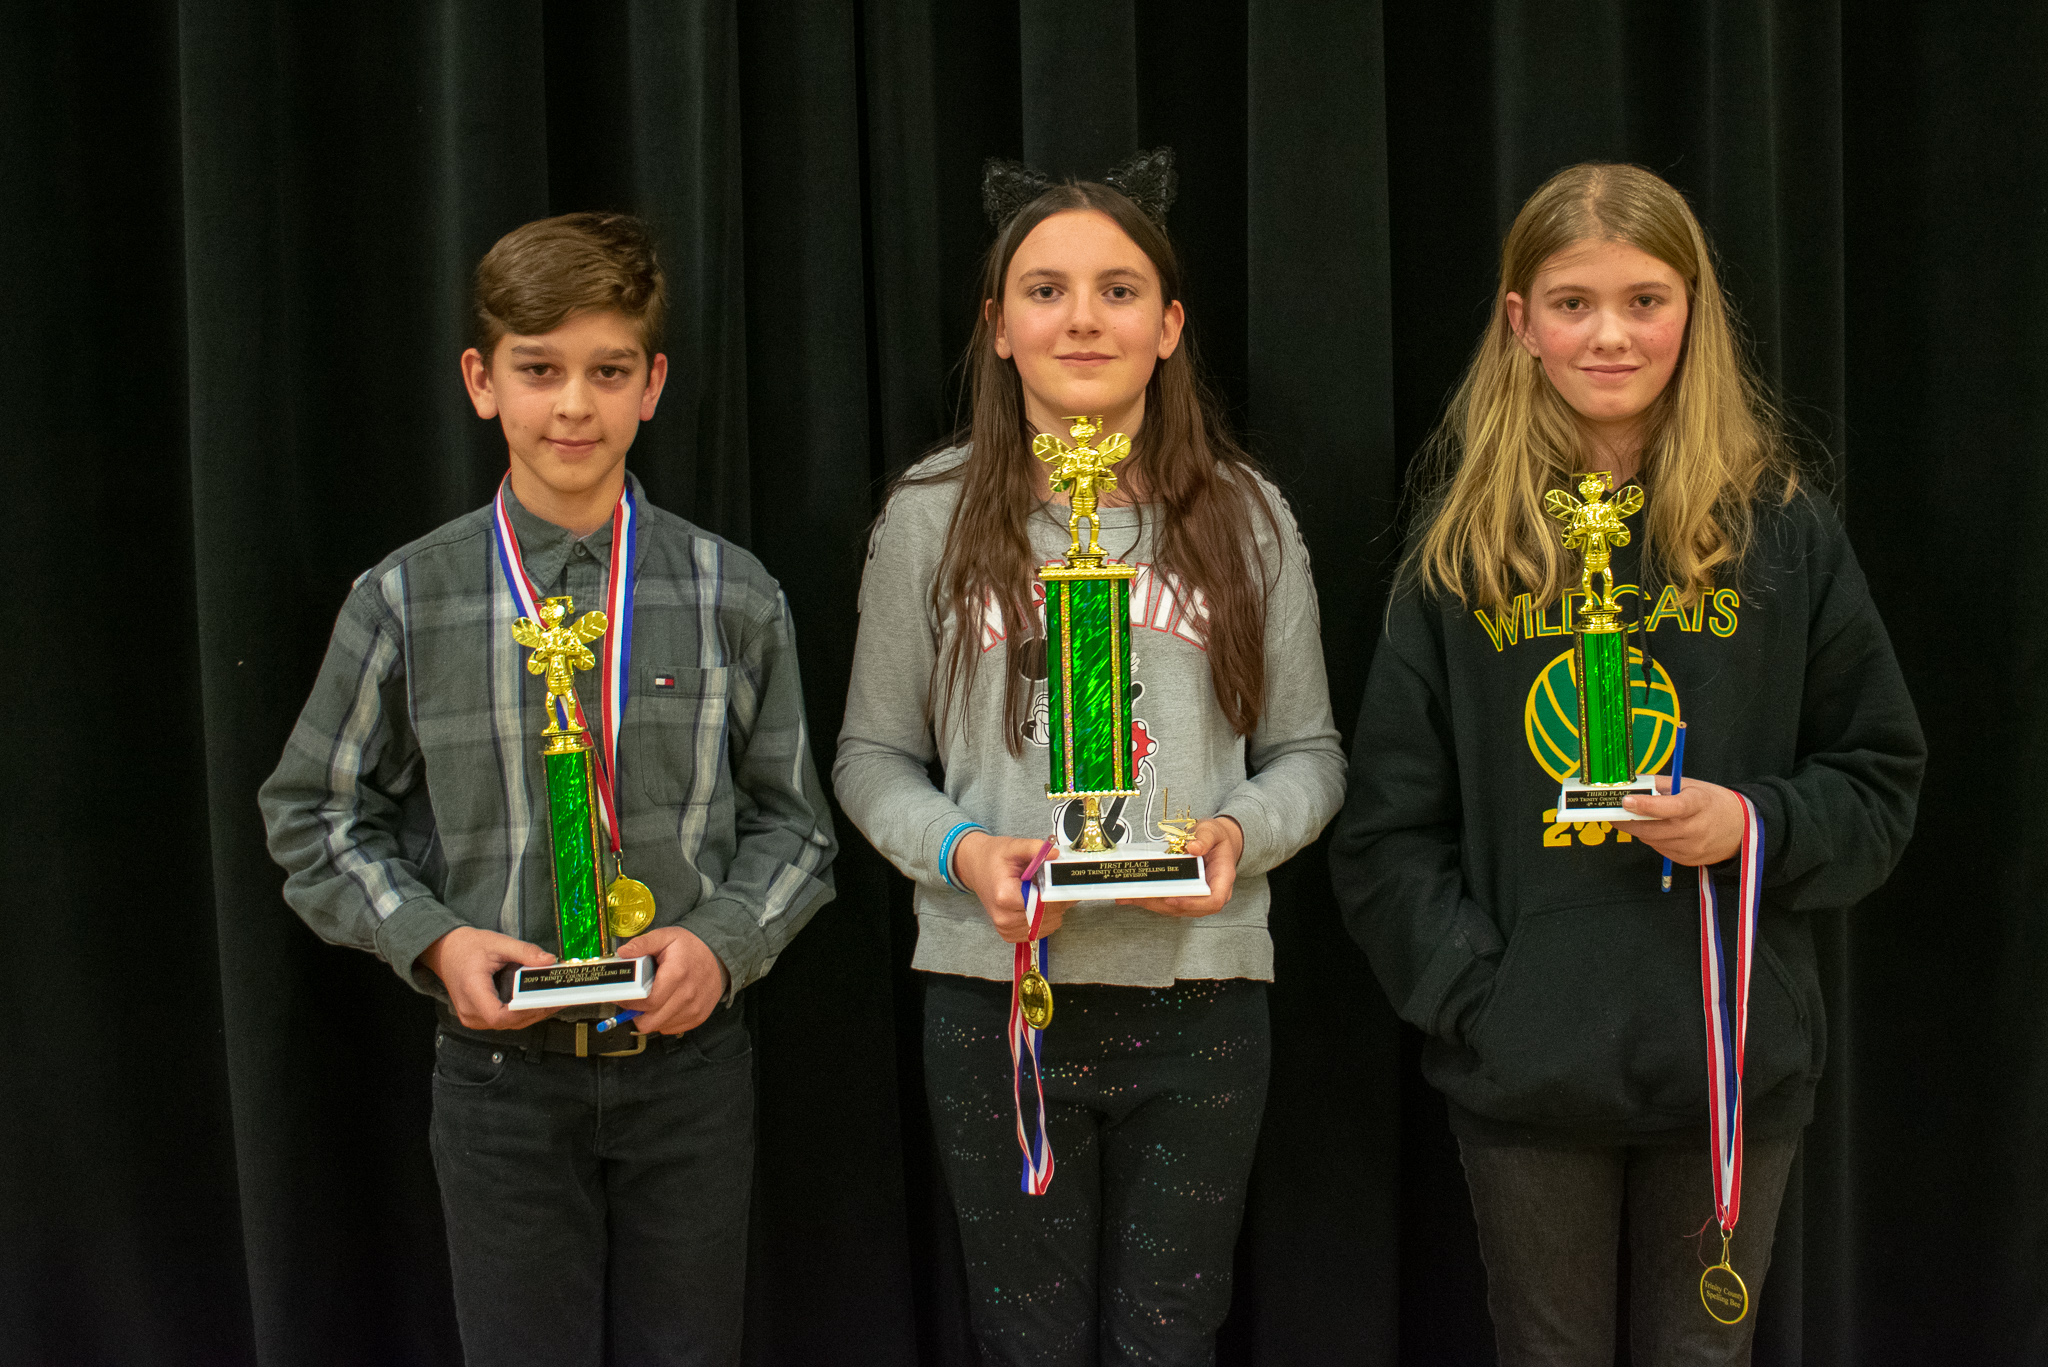 Spelling Bee winners